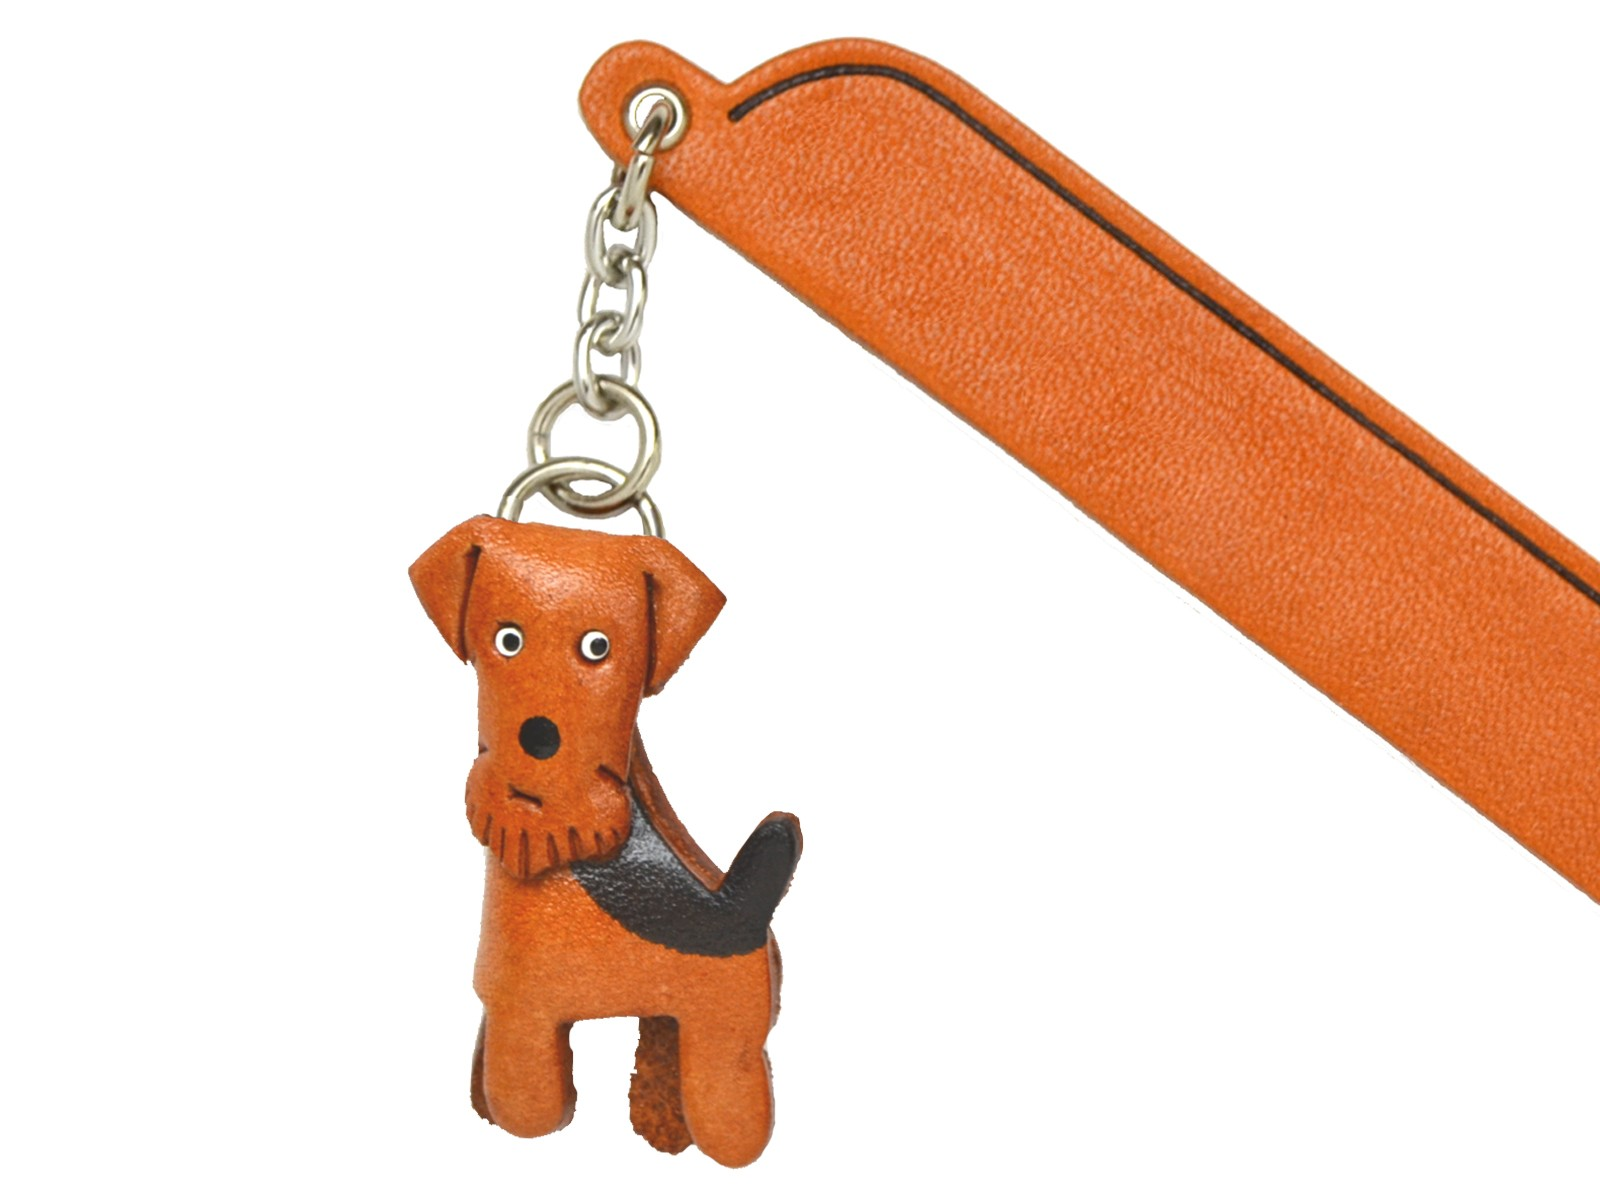 Airdale terrier Leather dog Charm Bookmarker *VANCA* Made in Japan #61702